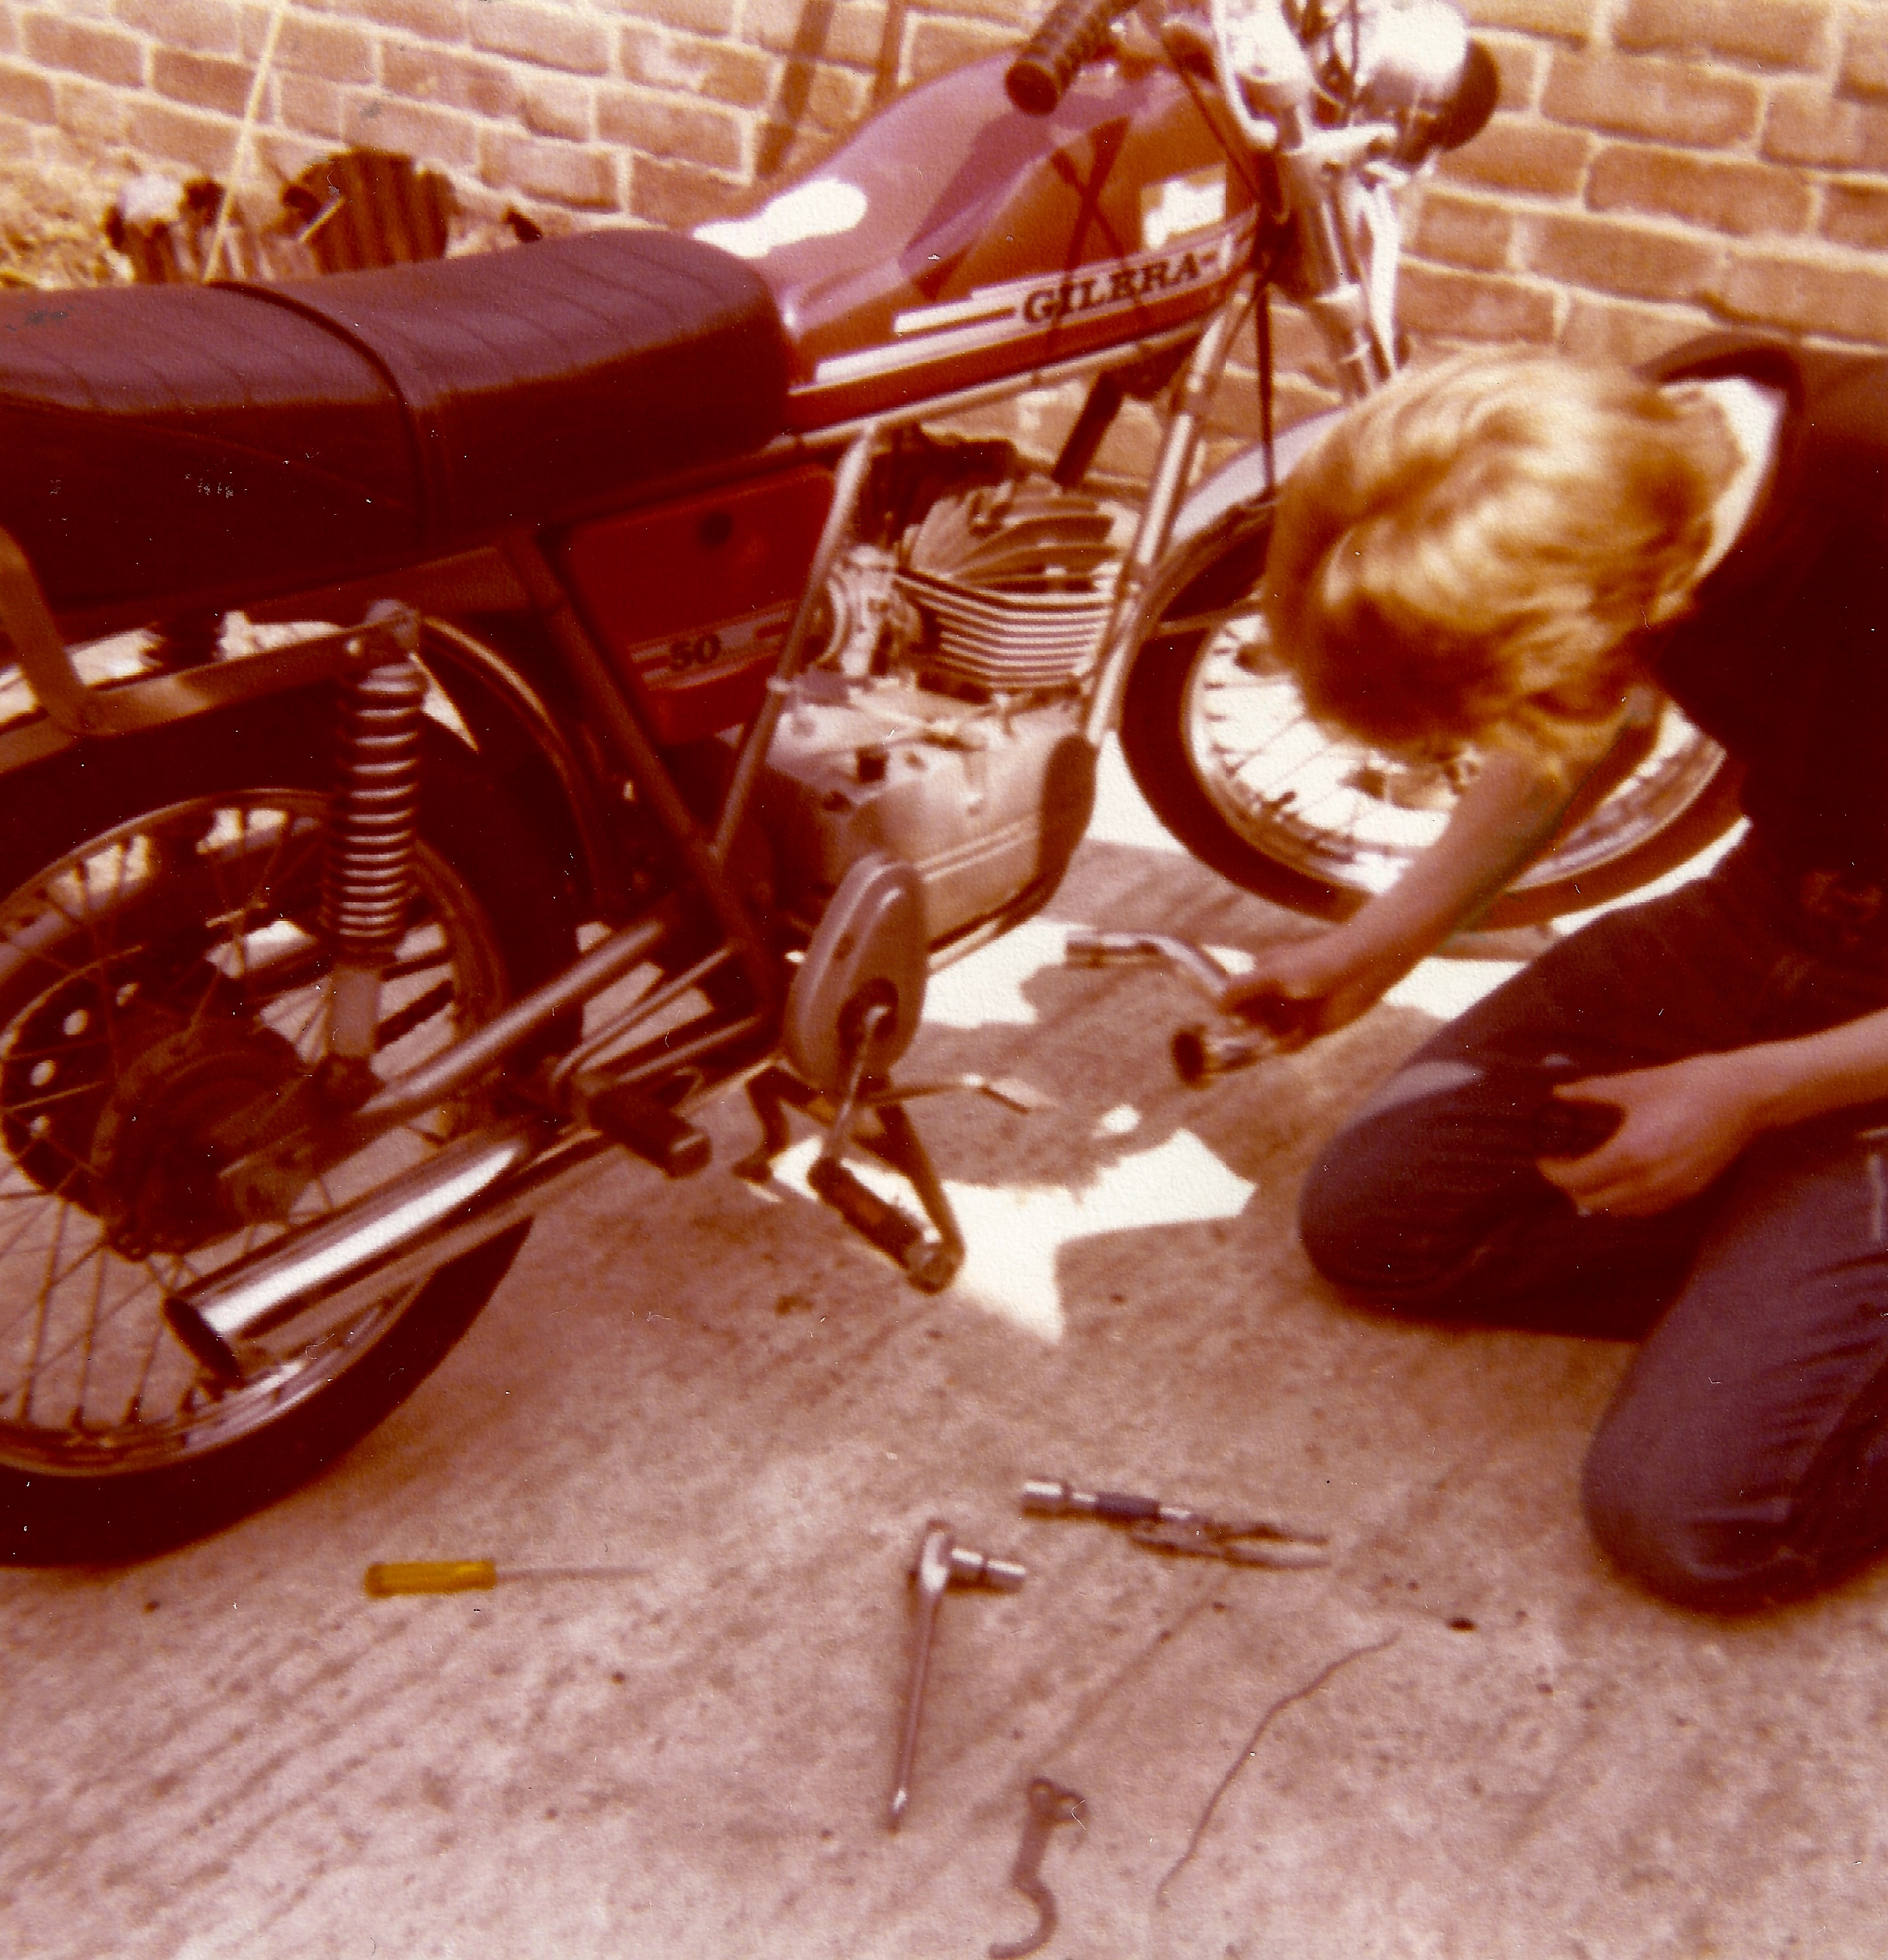 Vince on his knees fixing a removed exhaust pipe from the Gilera moped